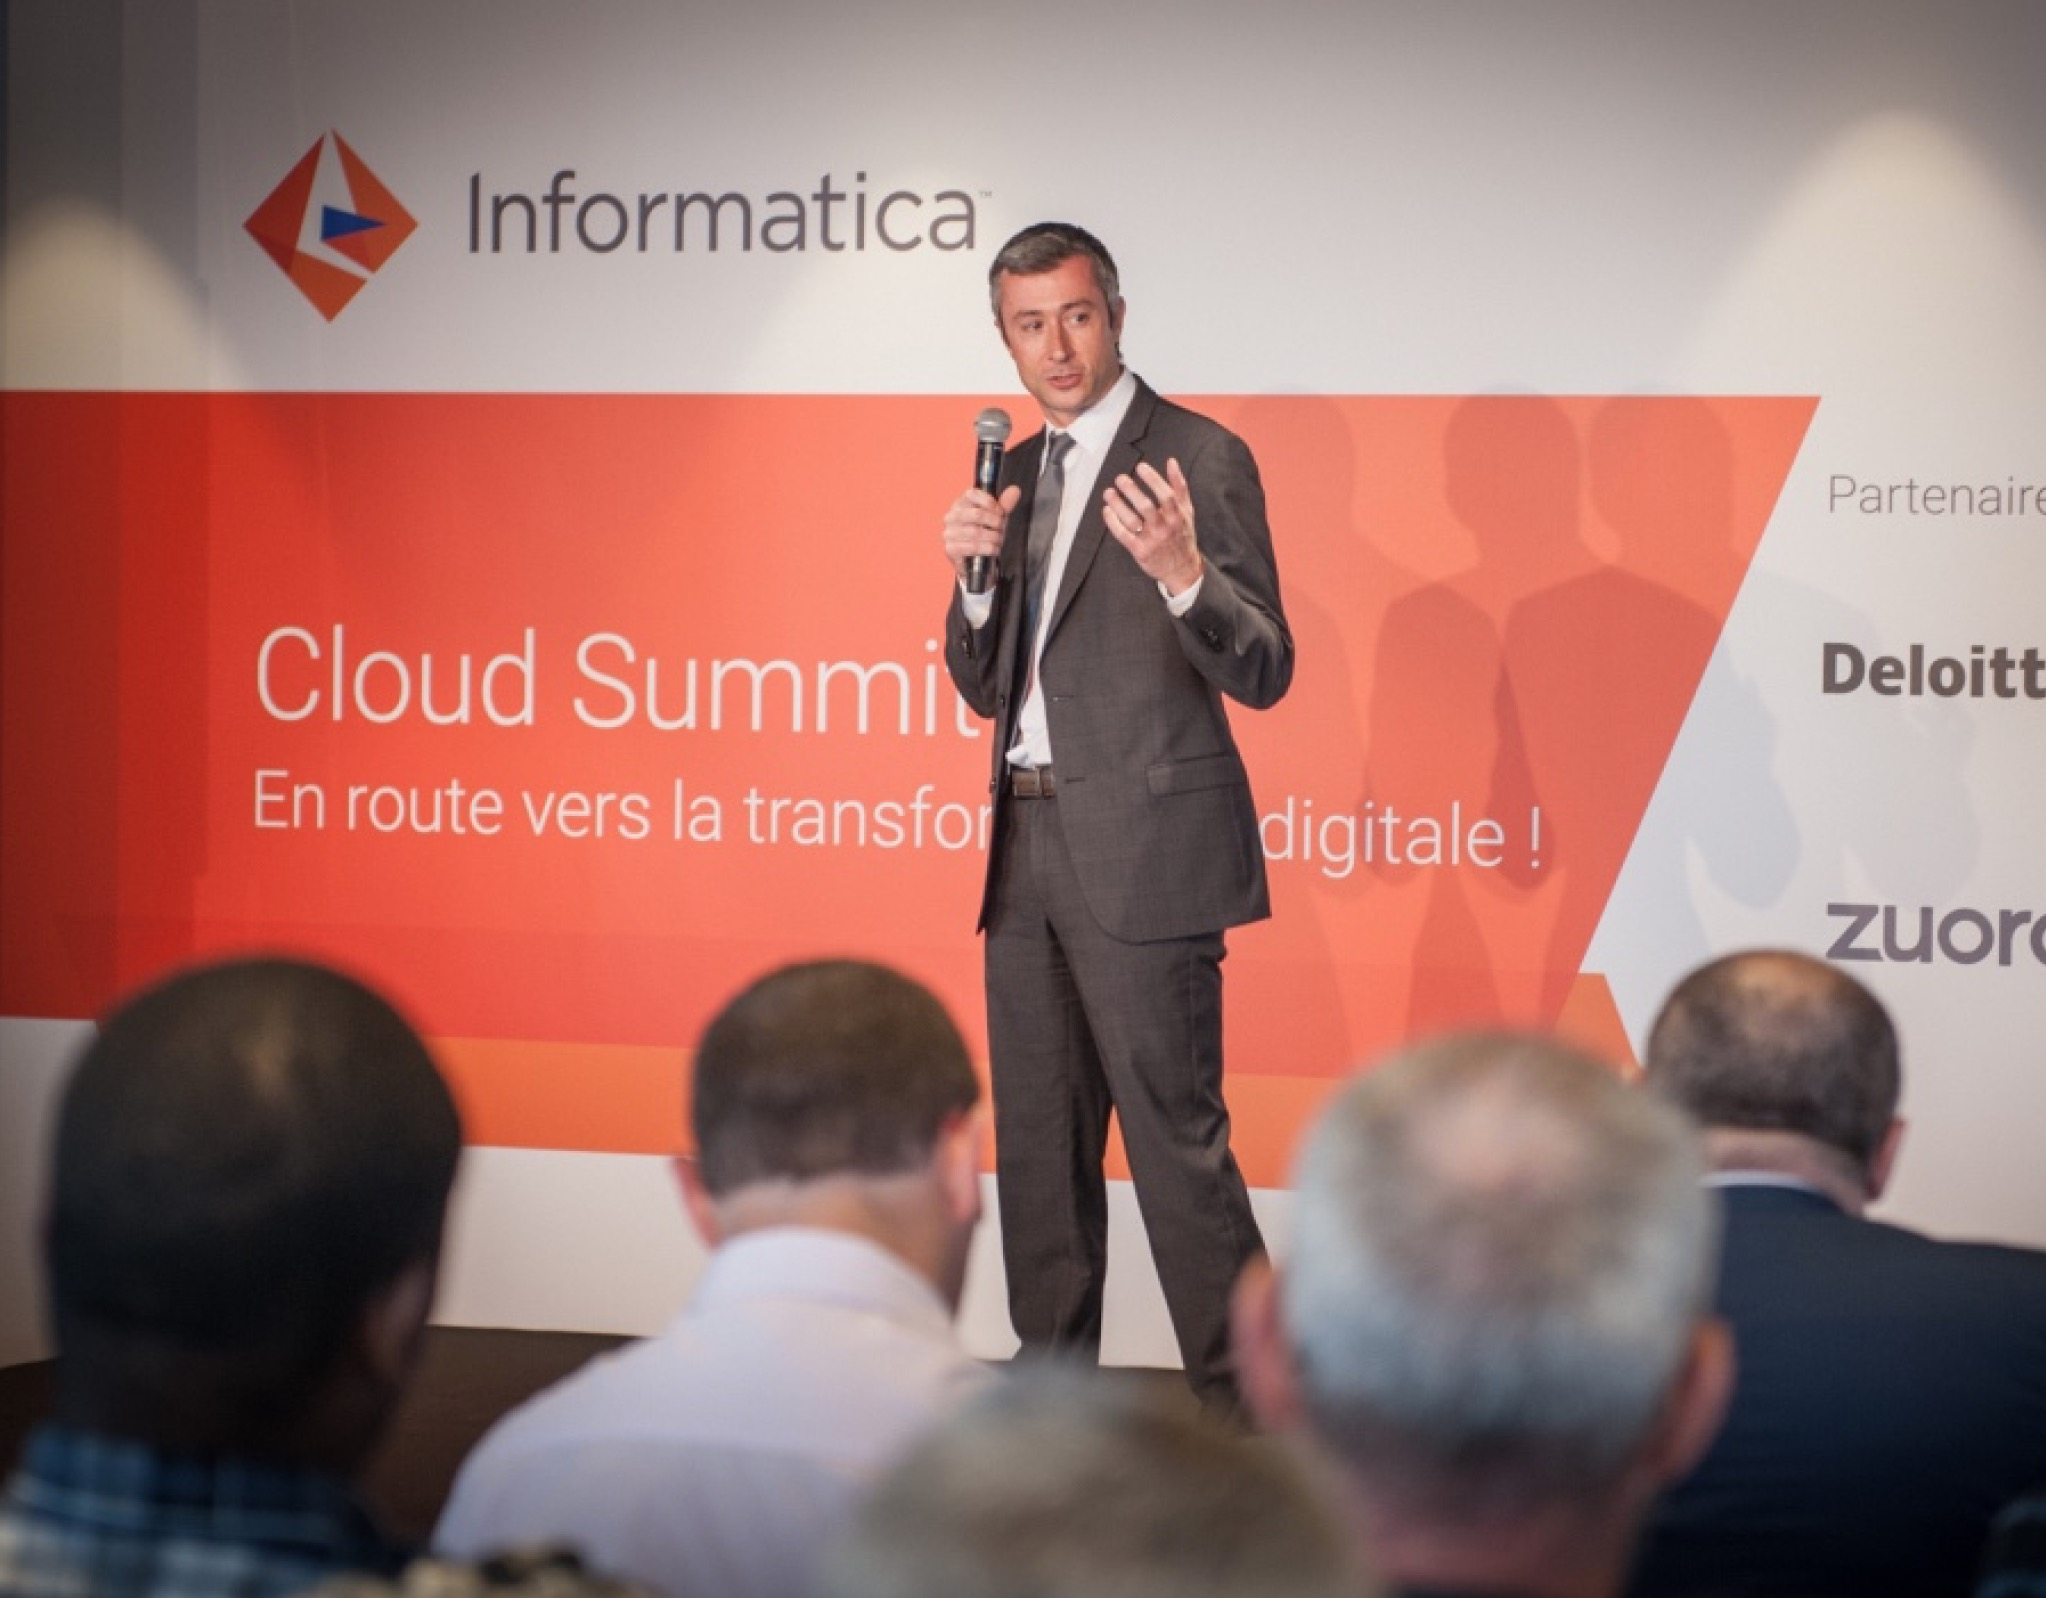 Informatica Cloud Summit